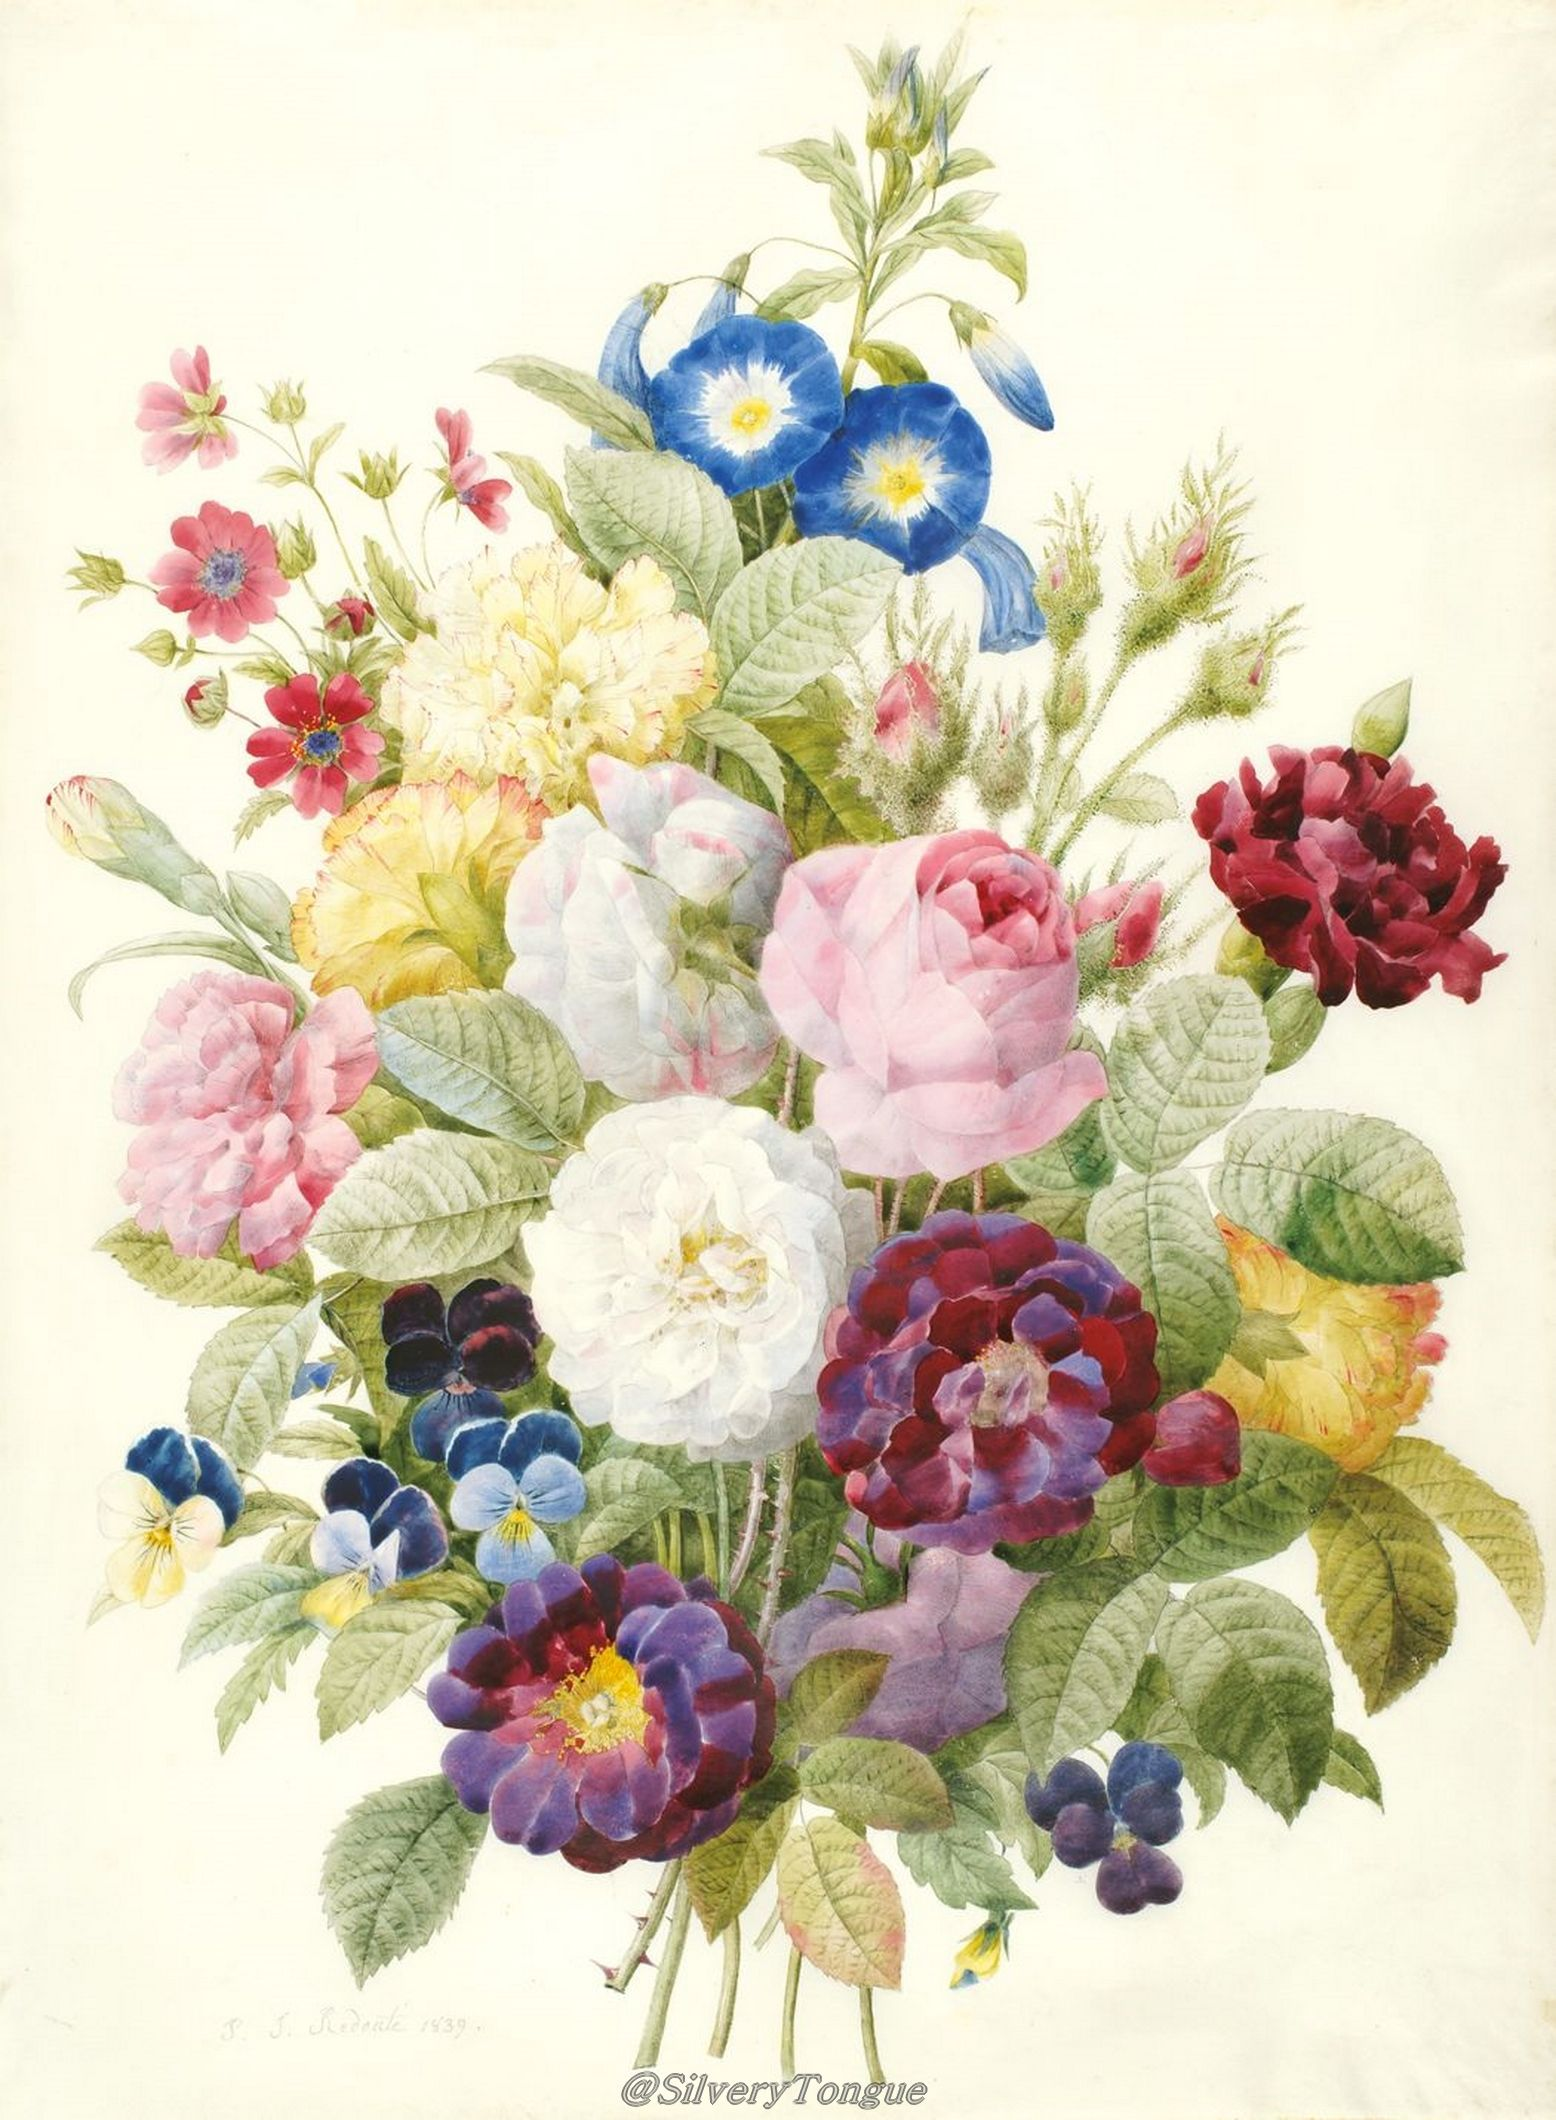 Philadelphia Society Of Botanical Illustrators Watercolor On Vellum By Pierre Joseph Redoute HI Art Accession No This Bouquet Was Painted